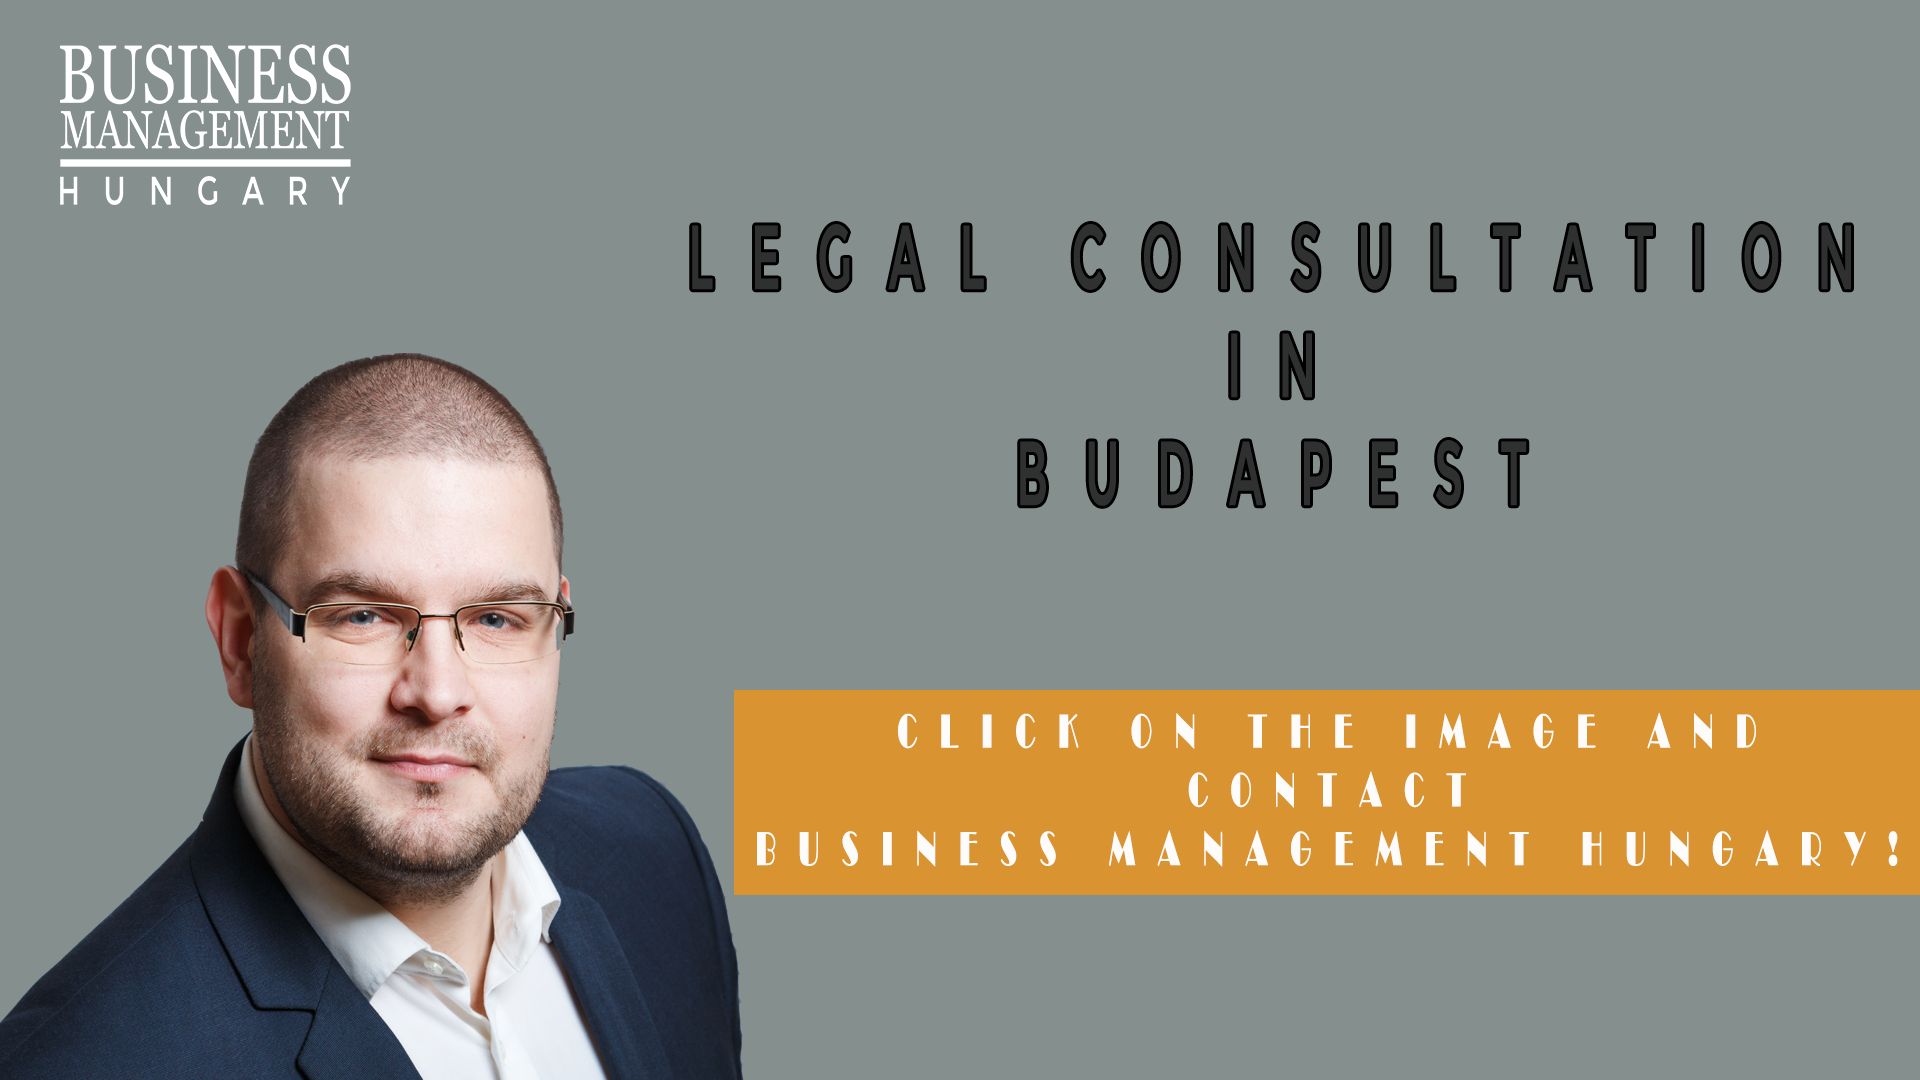 Legal Consultation in Budapest: Contact Us